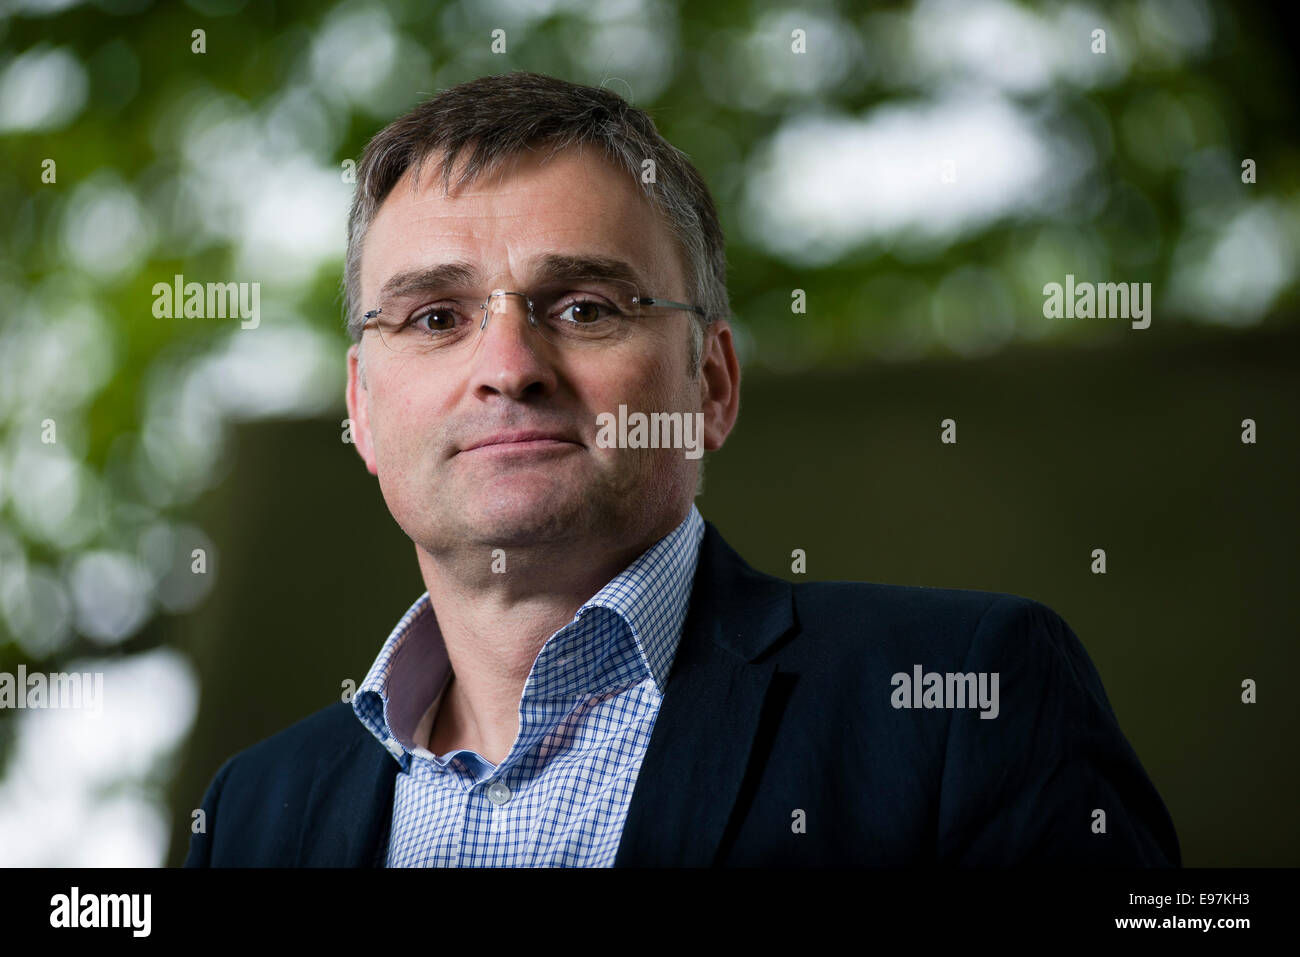 Political journalist Stefan Kornelius appears at the Edinburgh International Book Festival. - Stock Image